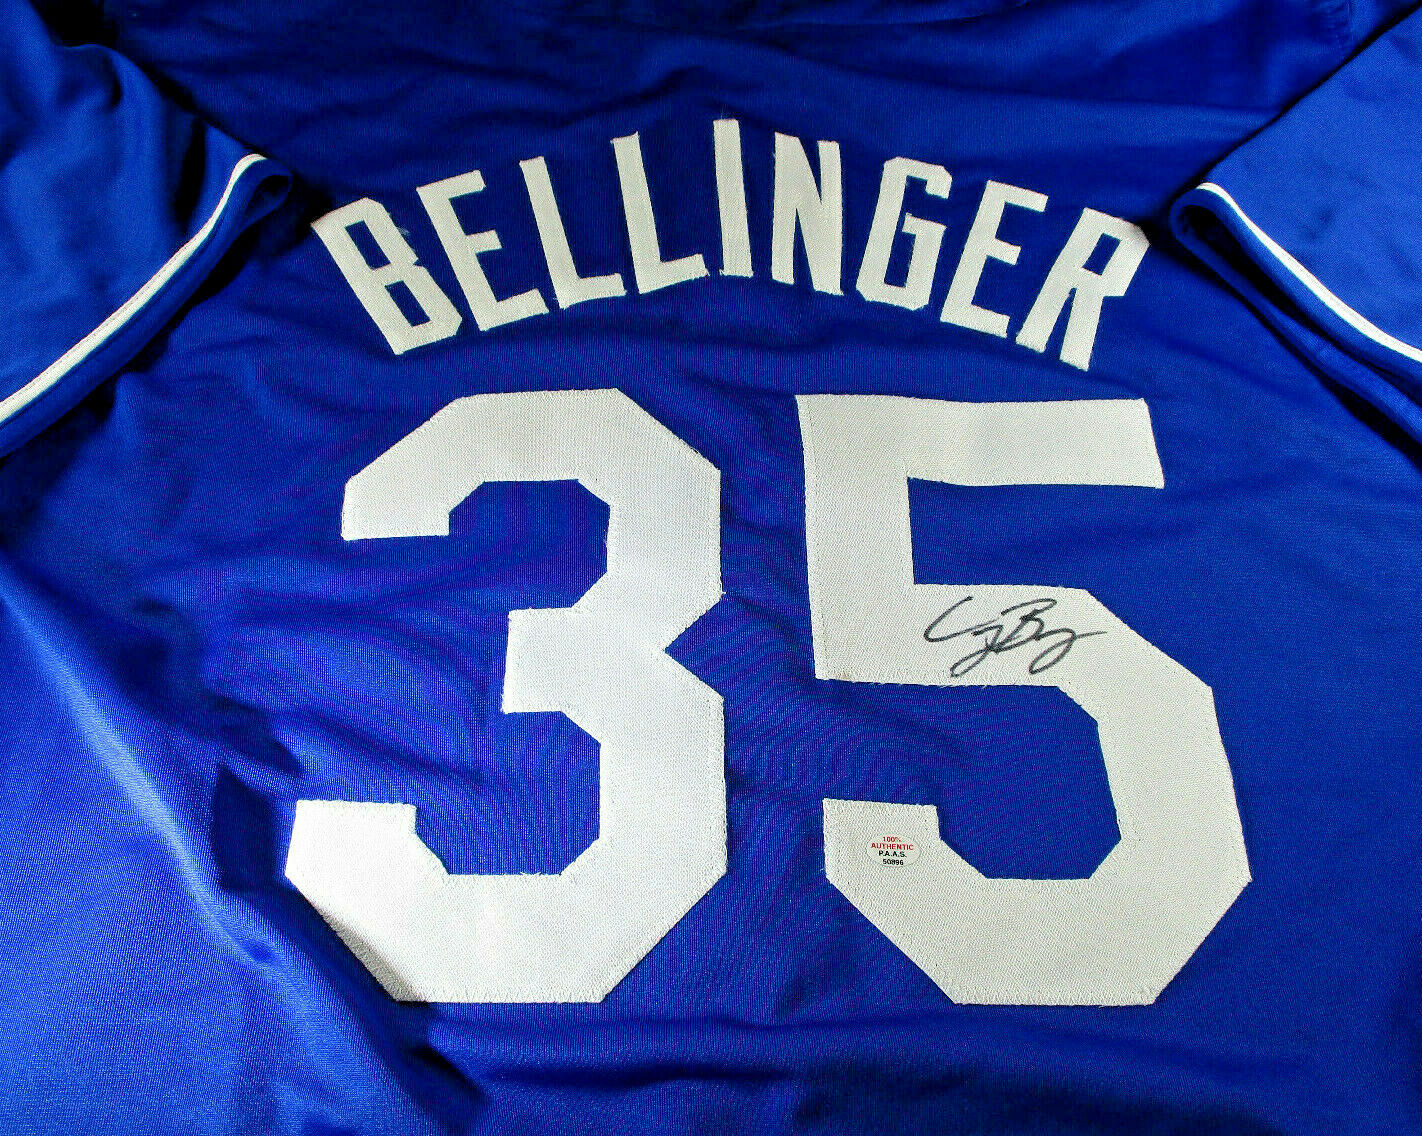 CODY BELLINGER / AUTOGRAPHED LOS ANGELES DODGERS CUSTOM BASEBALL JERSEY / COA